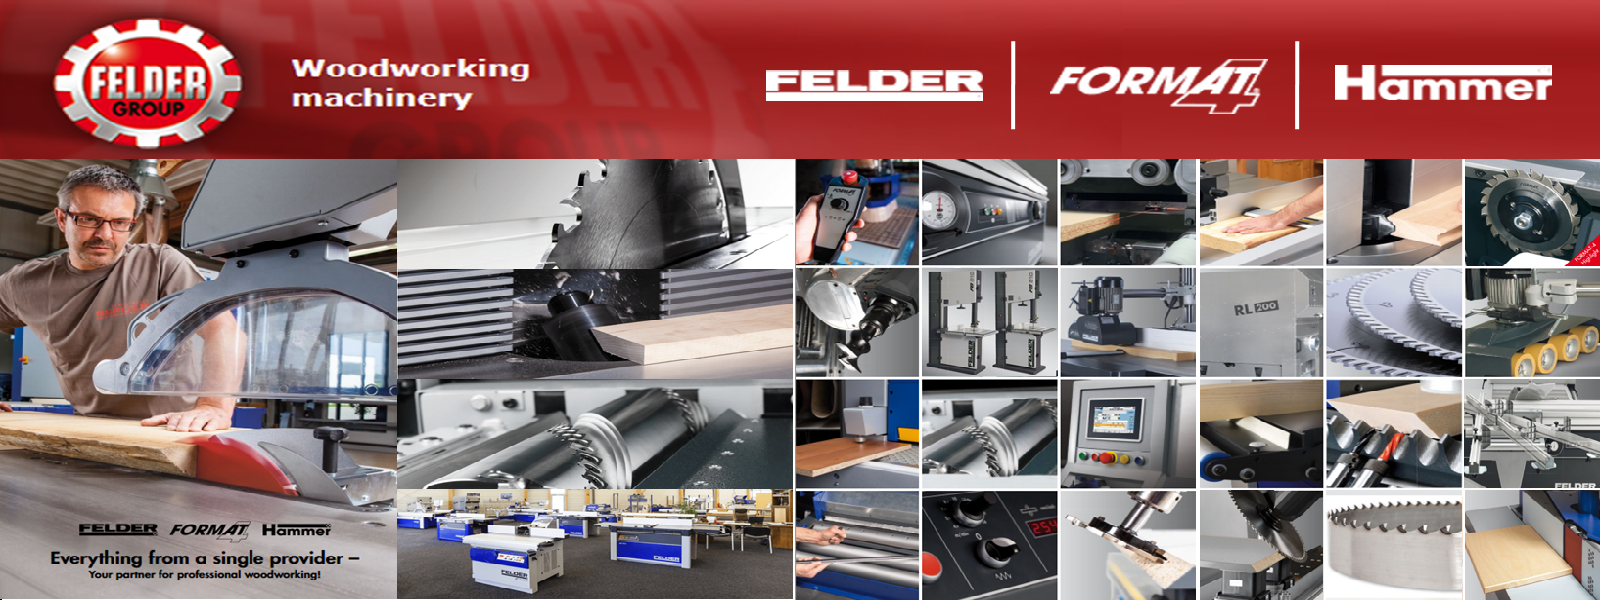 Felder Woodworking Machines